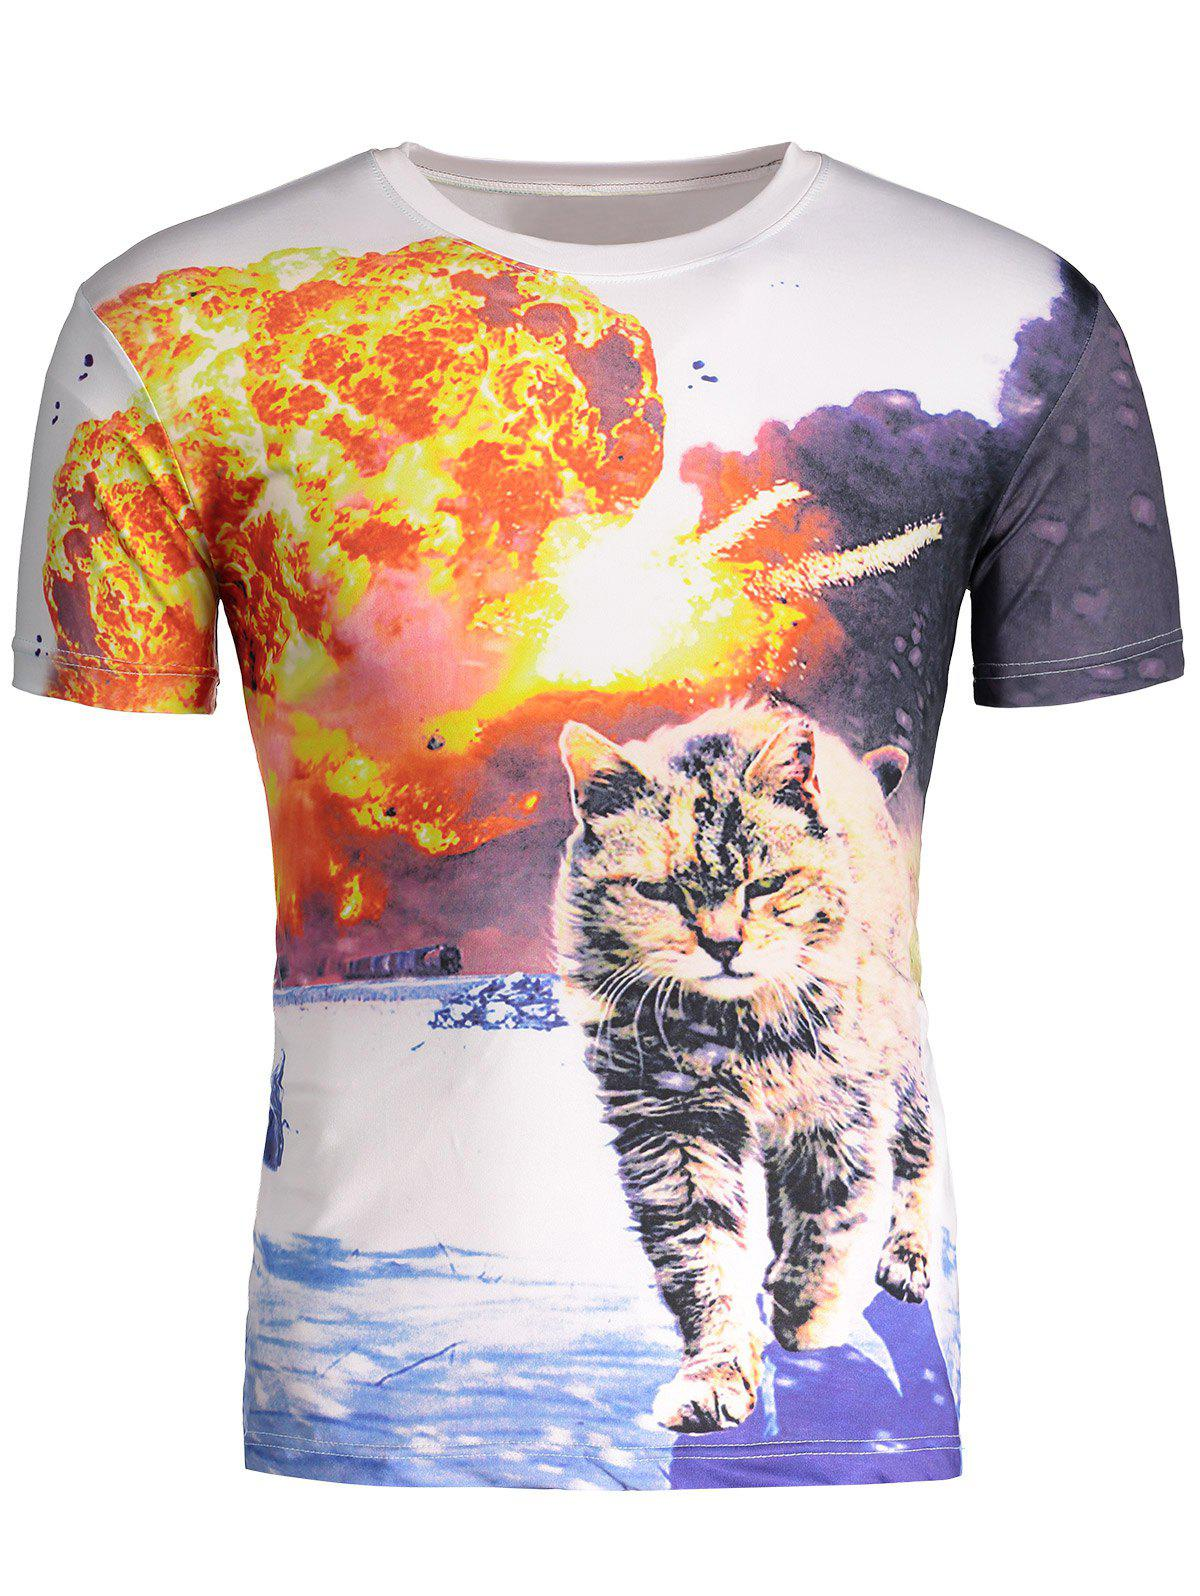 Online Hot Sale Round Neck 3D Explosion Cat Print Short Sleeves Cool T-Shirt For Men